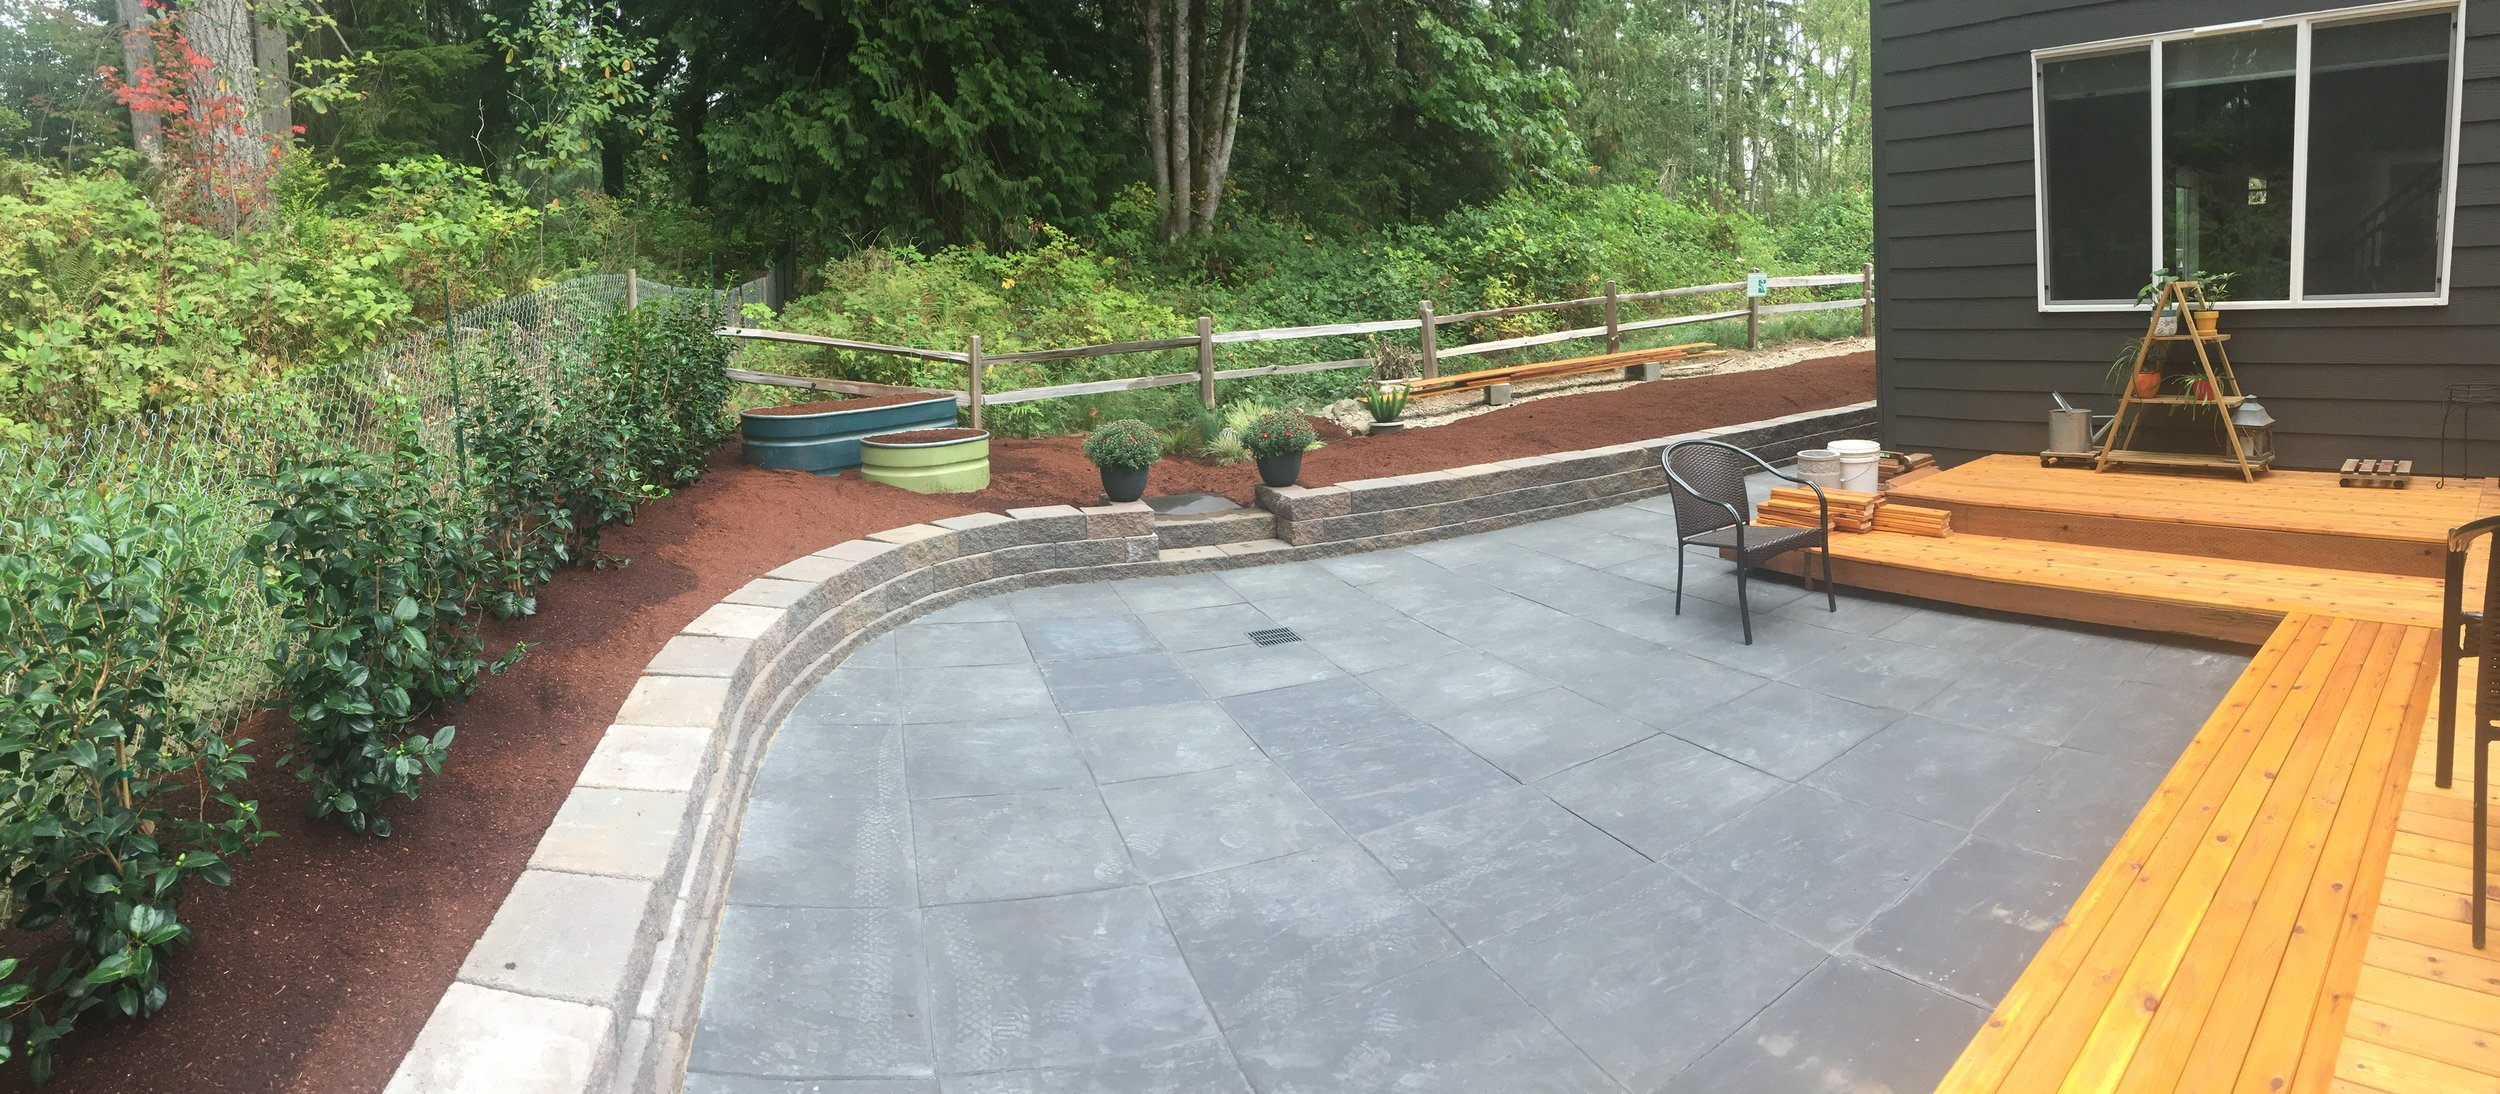 """This backyard patio, retaining wall and red bark garden beds is made with 24""""x24"""" charcoal glacier slate pavers, manor stone summit blend blocks, and drip irrigation along the garden beds and row of Camellia bushes."""